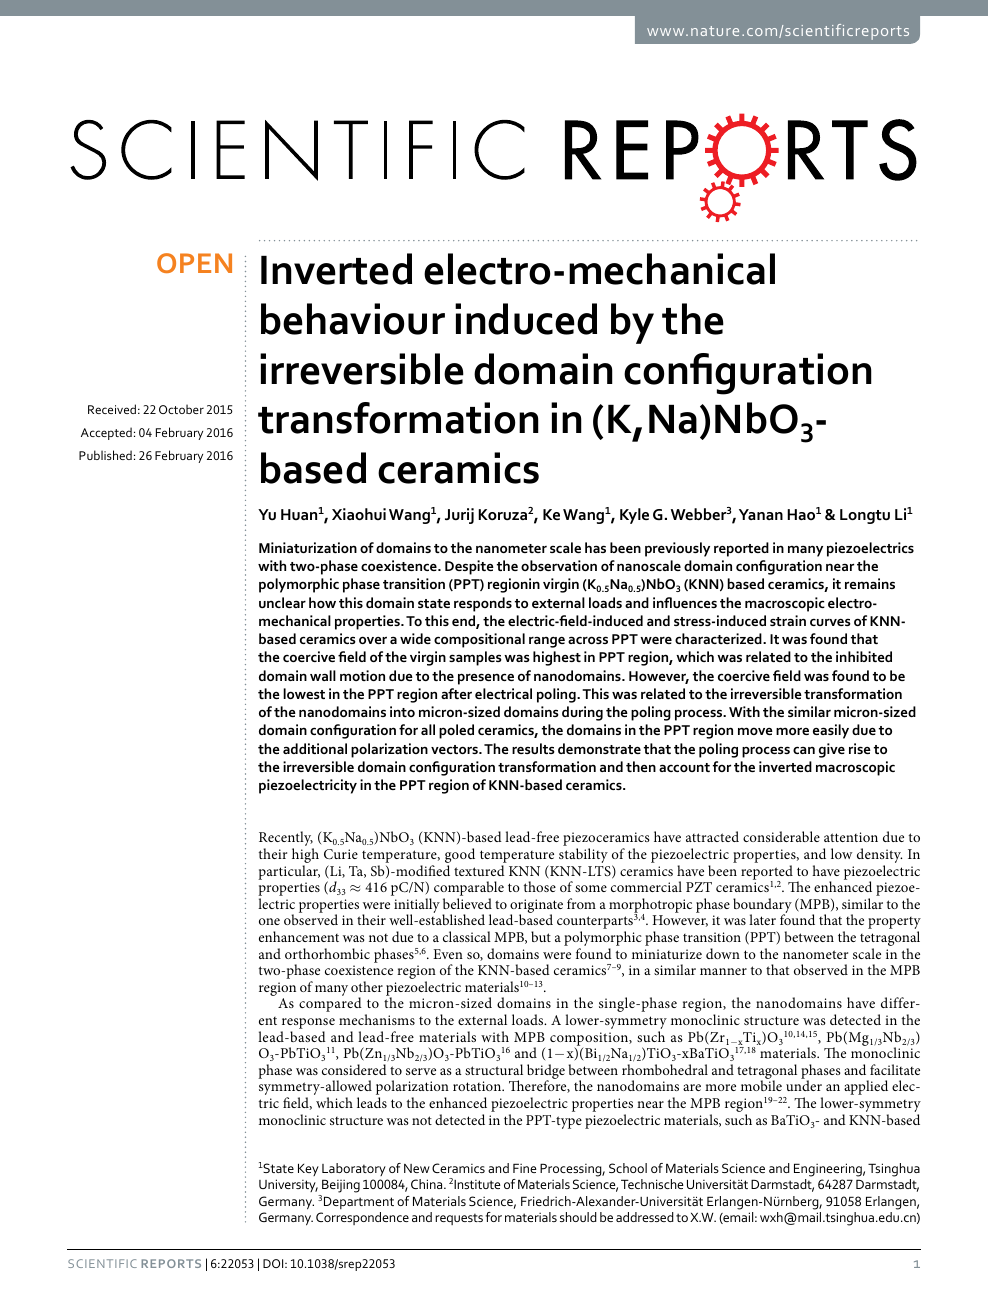 Inverted electro-mechanical behaviour induced by the irreversible